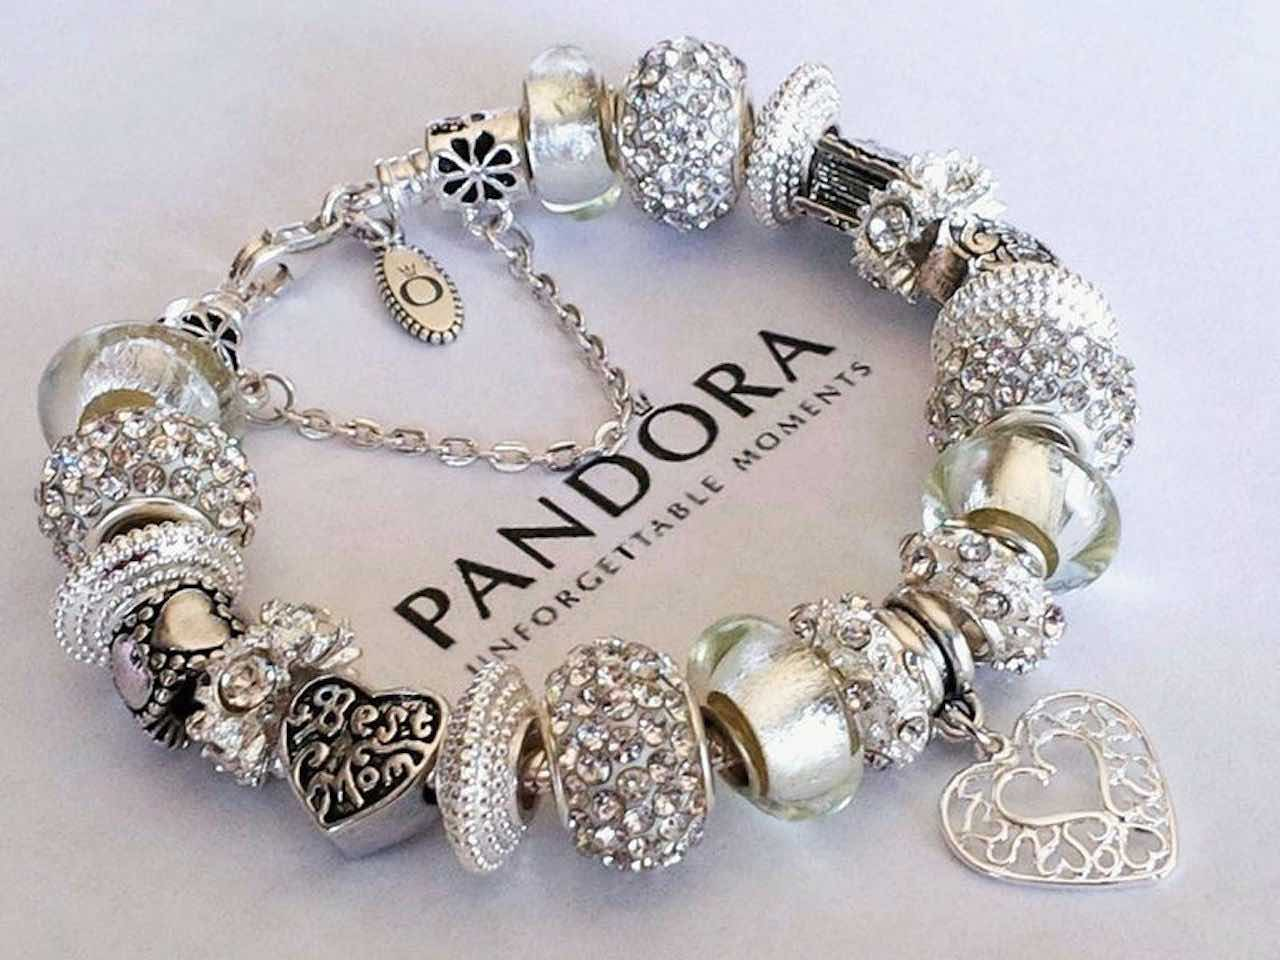 SWOT analysis of Pandora Jewellery